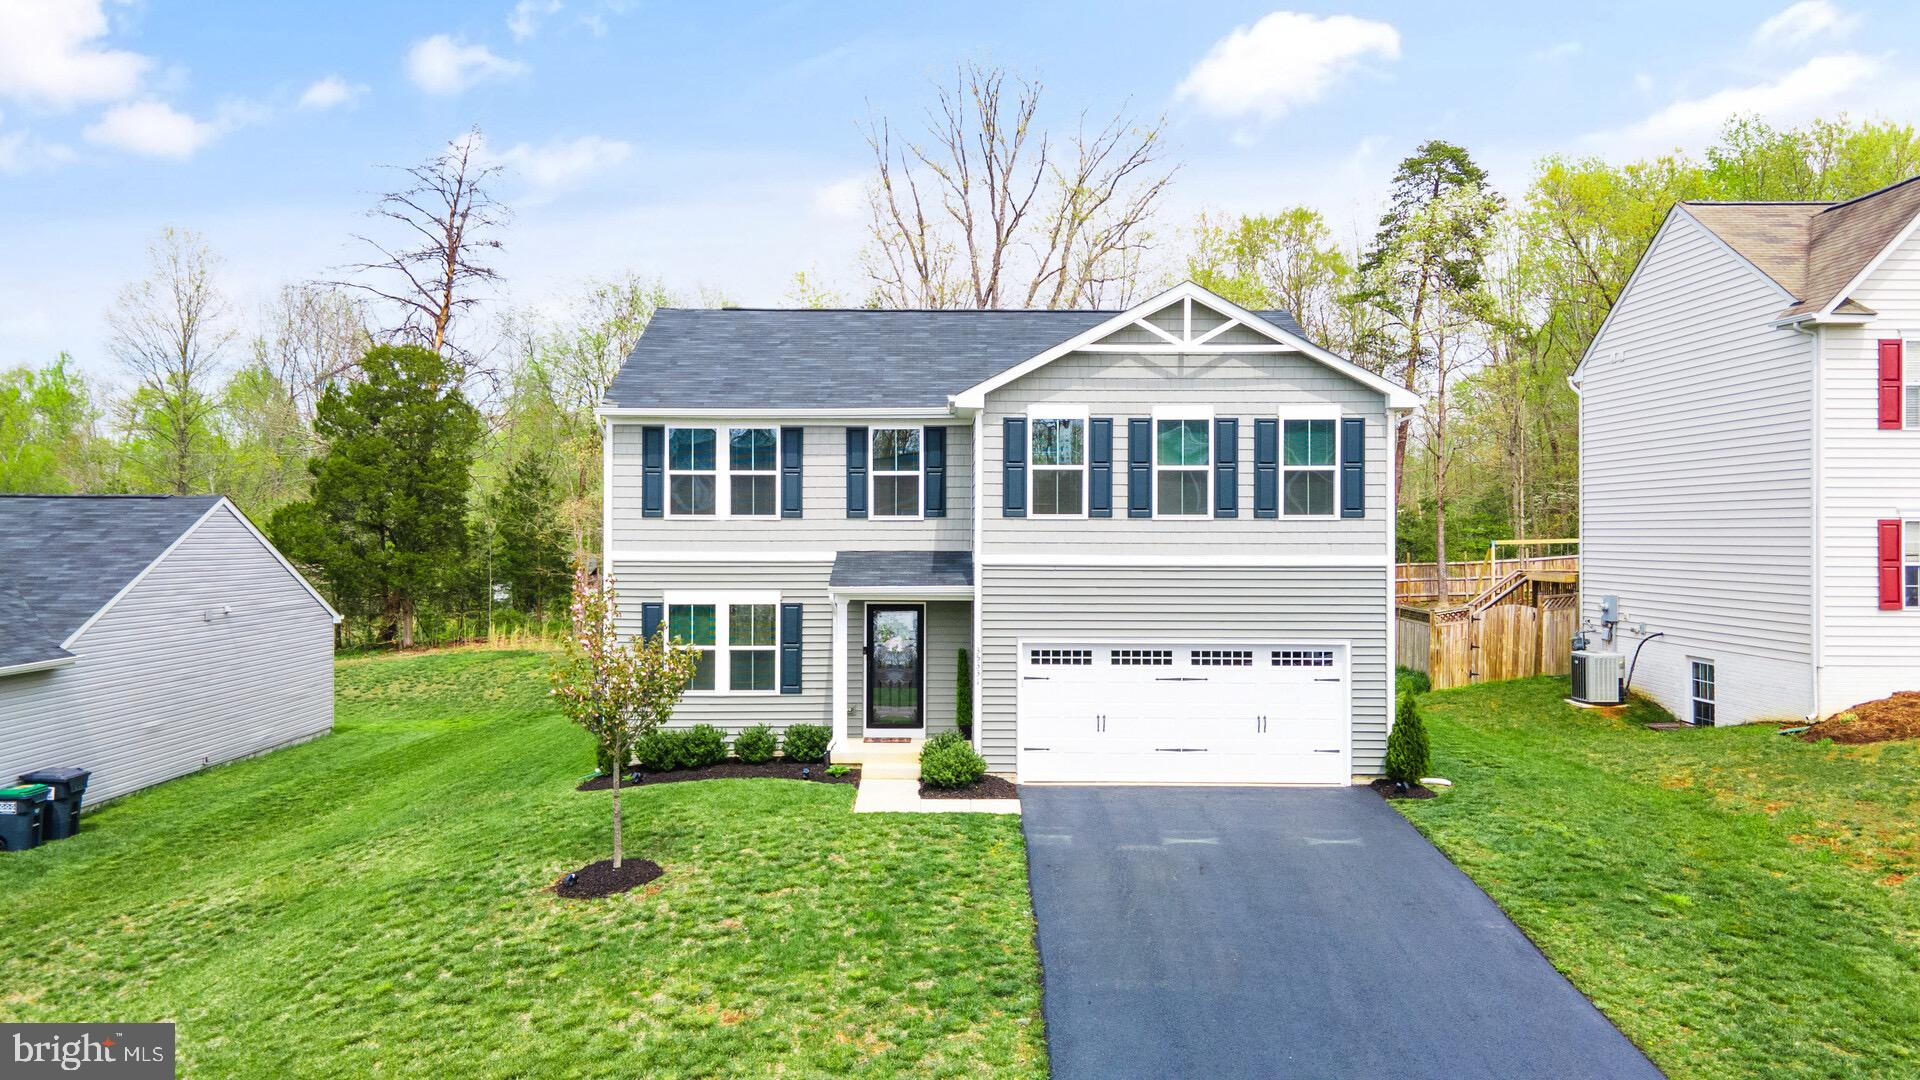 Awesome location in Locust Grove, literally minutes from Shopping. Locust Grove is midway between Fredericksburg and Culpeper! Super easy to go either way for weekend fun in the area!   This home was built in 2018 and has been lovingly maintained by the original owners. This home truly looks like new! There is a fabulous main level that  offers flexibility galore! The Great room can be a Living Room, Family room, Office, the options are unlimited! There is a large Dining space for your Farm Table and the Kitchen is perfect for preparing Gourmet meals to be enjoyed out on the SCREENED IN porch! Upstairs are FIVE bedrooms all set and ready for family and friends. There are 2 Fulls Baths upstairs as well. The basement is 900 sq ft, ready for your customization! There is an egress window so you could add another legal bedroom downstairs!There is also a plumbing rough in ready for a bath to be completed! Amazing amenity rich neighborhood with a POOL, PLAYGROUND and TRAILS!  Award winning schools and close proximity to everything makes this home the PERFECT place to live!